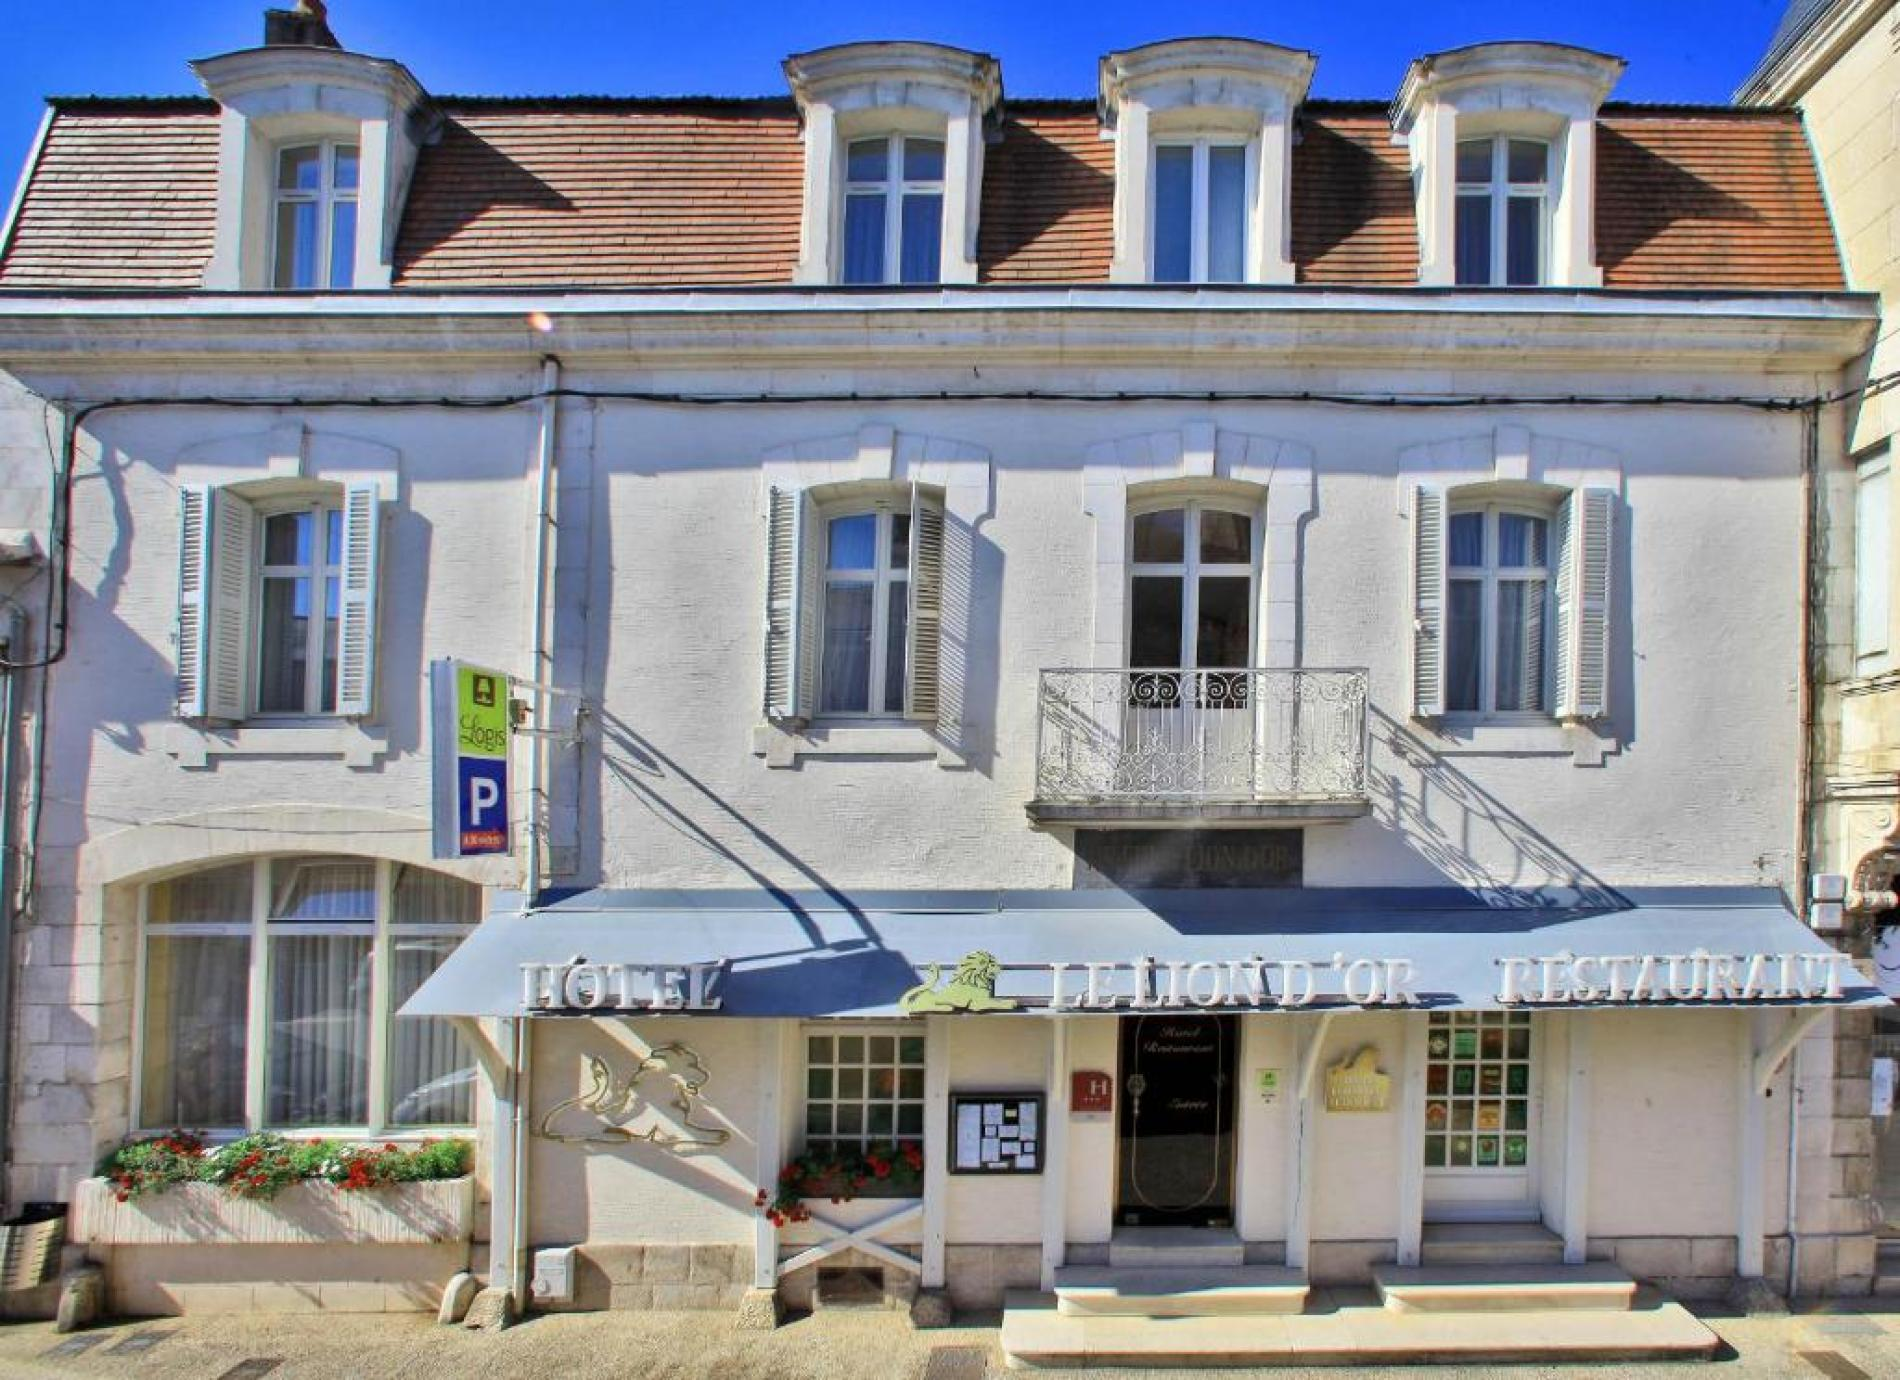 Logis hotel in Chauvigny